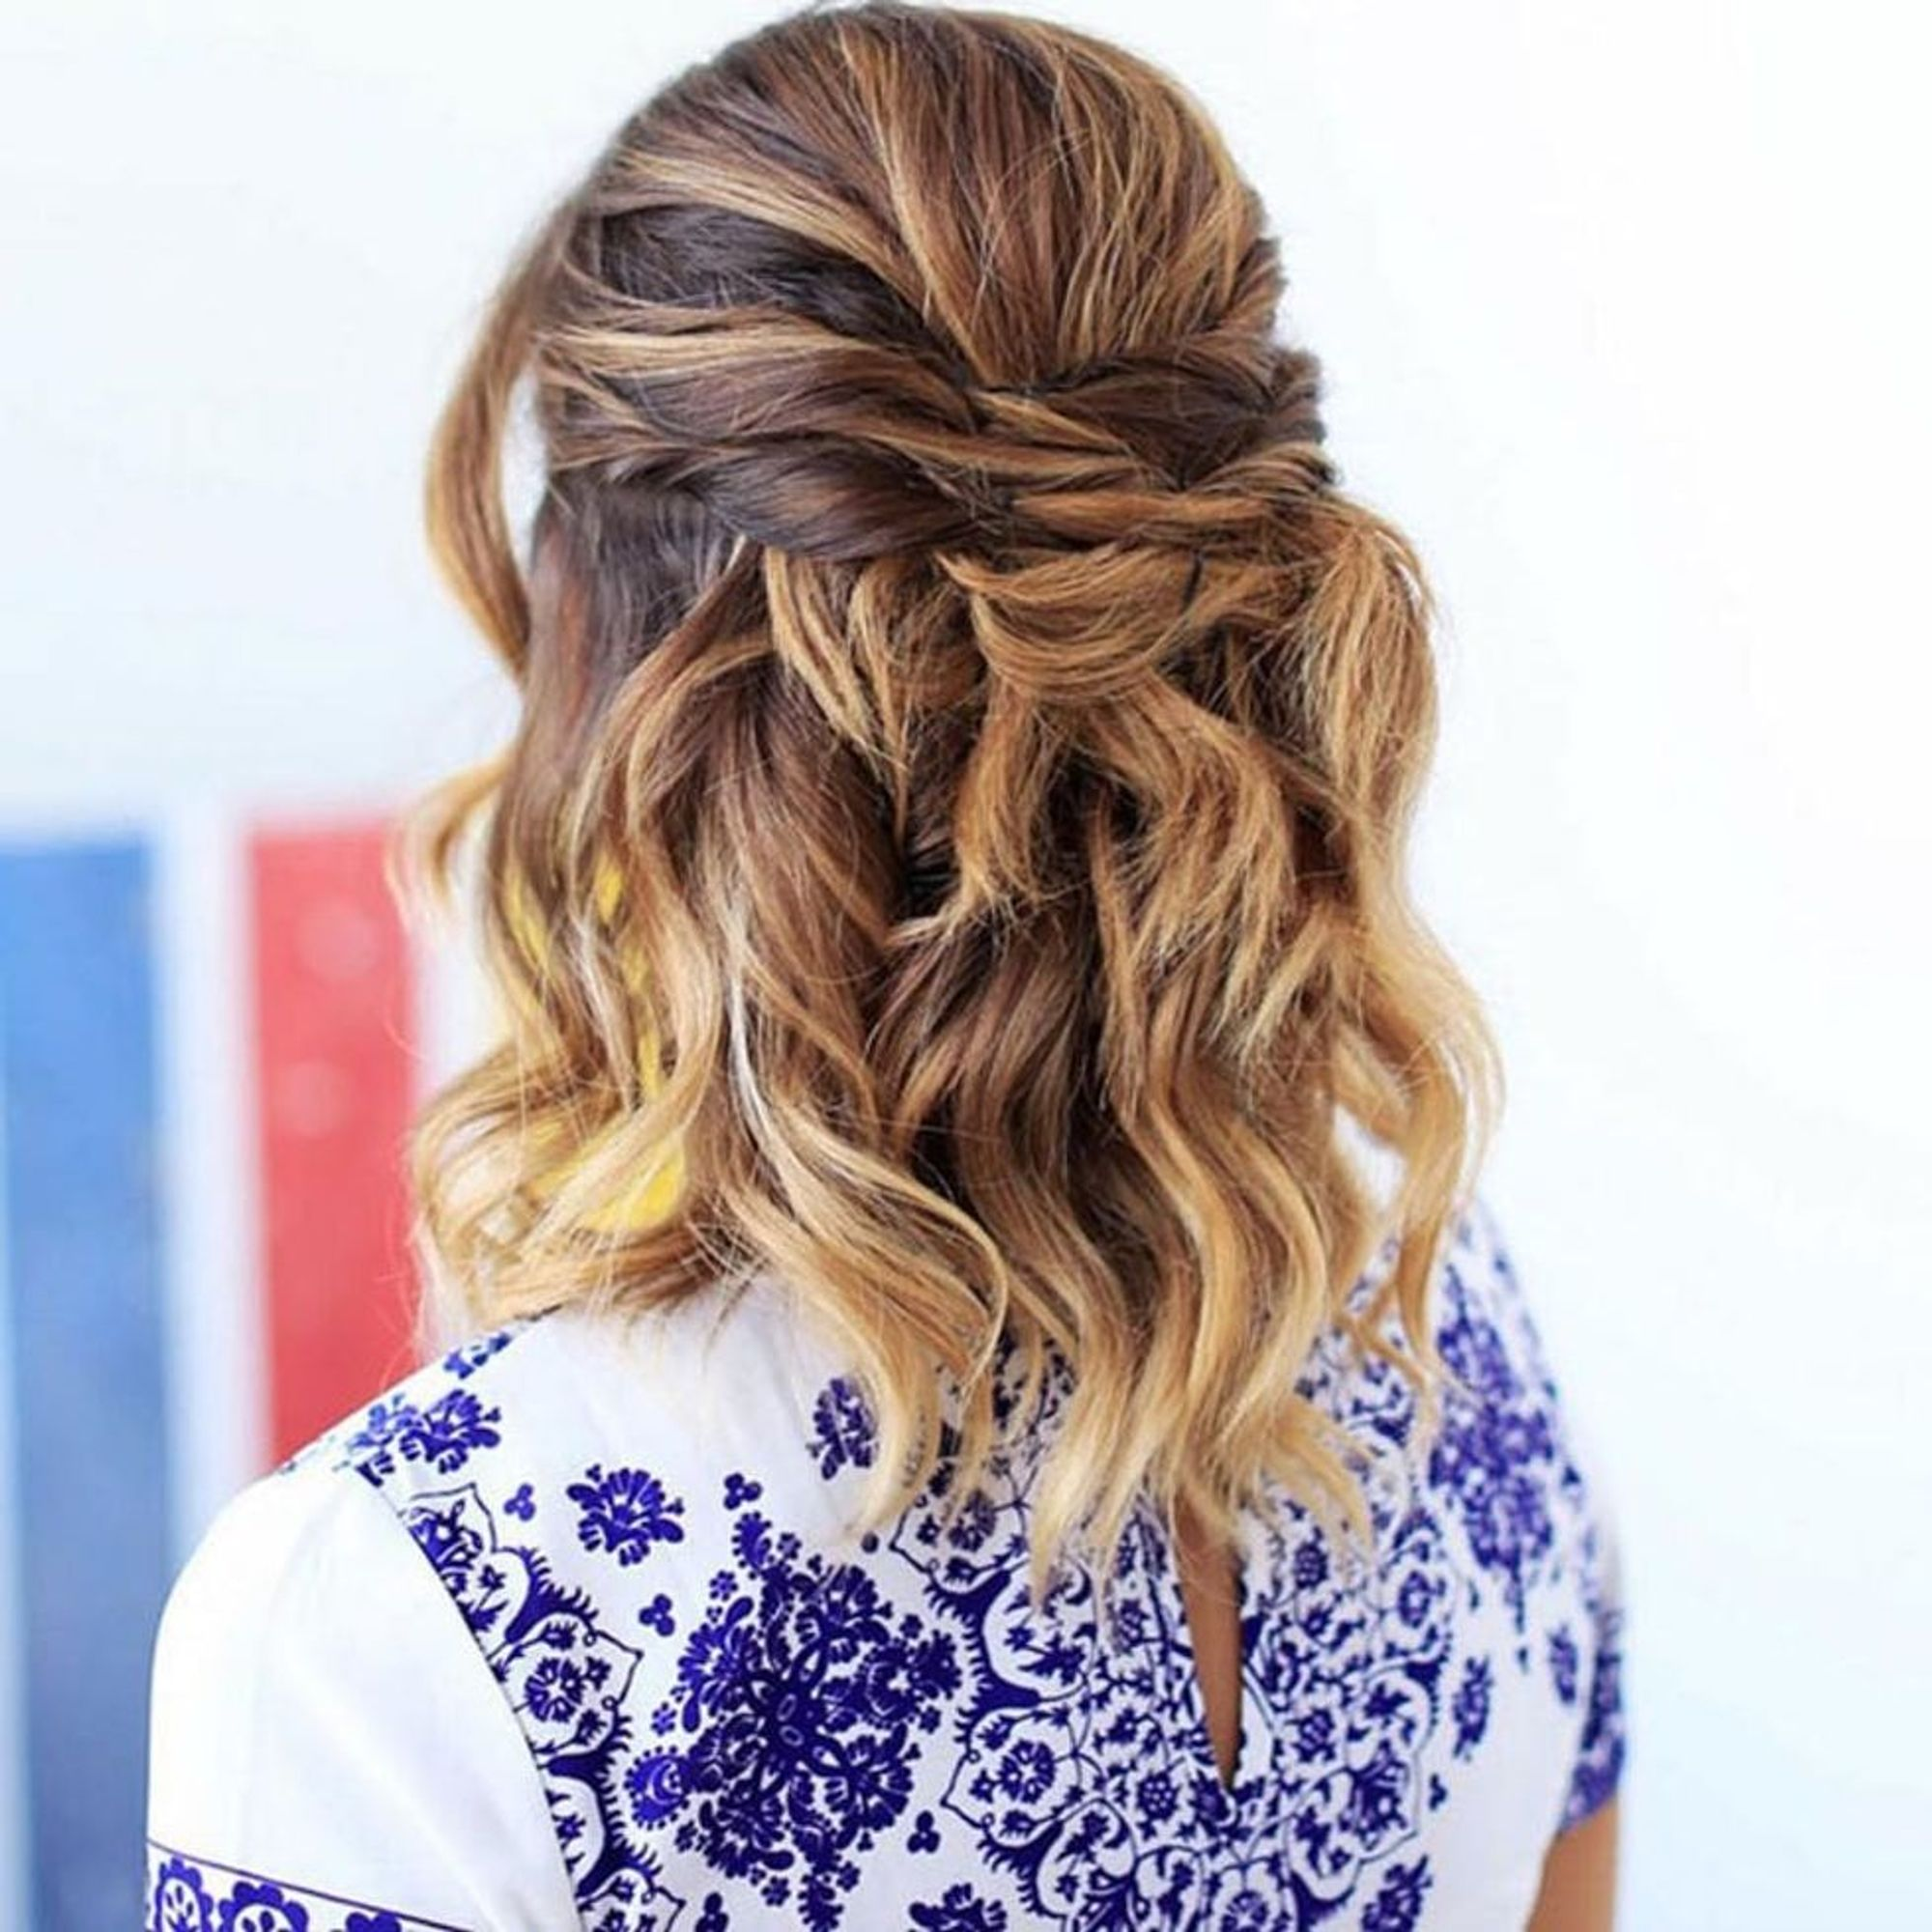 10 Mid-Length Hairstyles to Wear to All Your Summer Events - Brit + Co